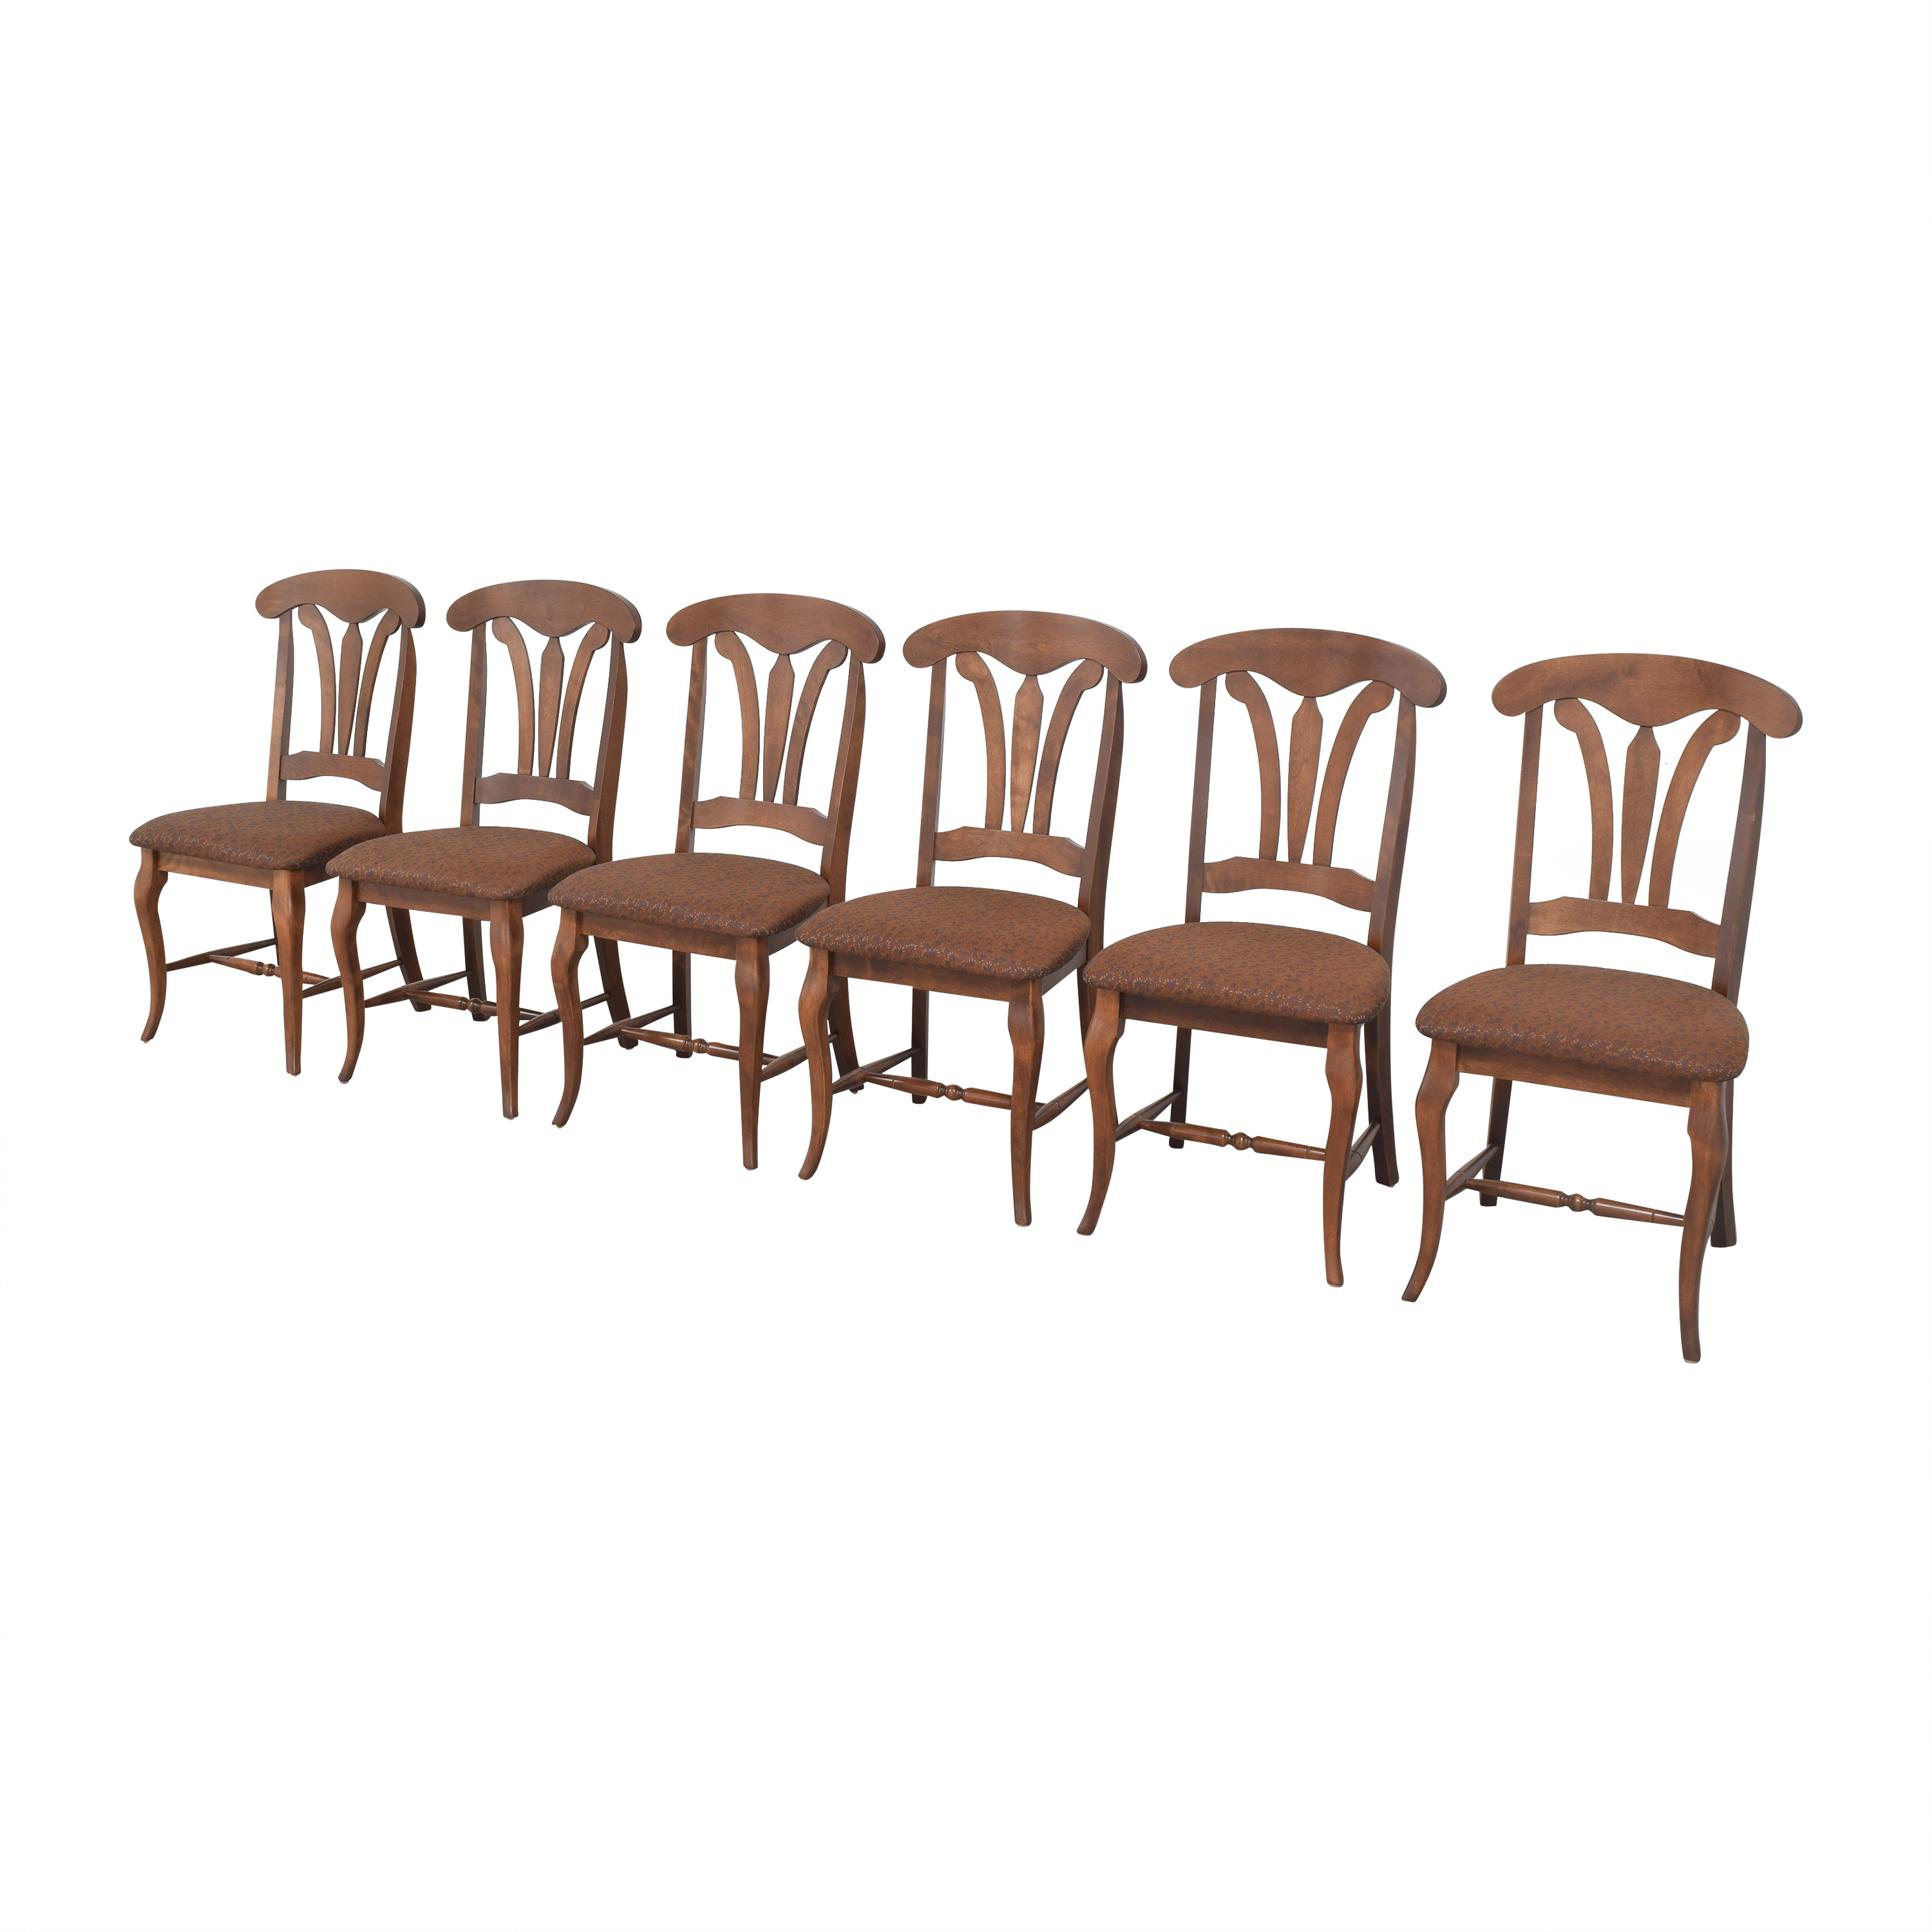 Canadel Canadel Upholstered Dining Chairs brown